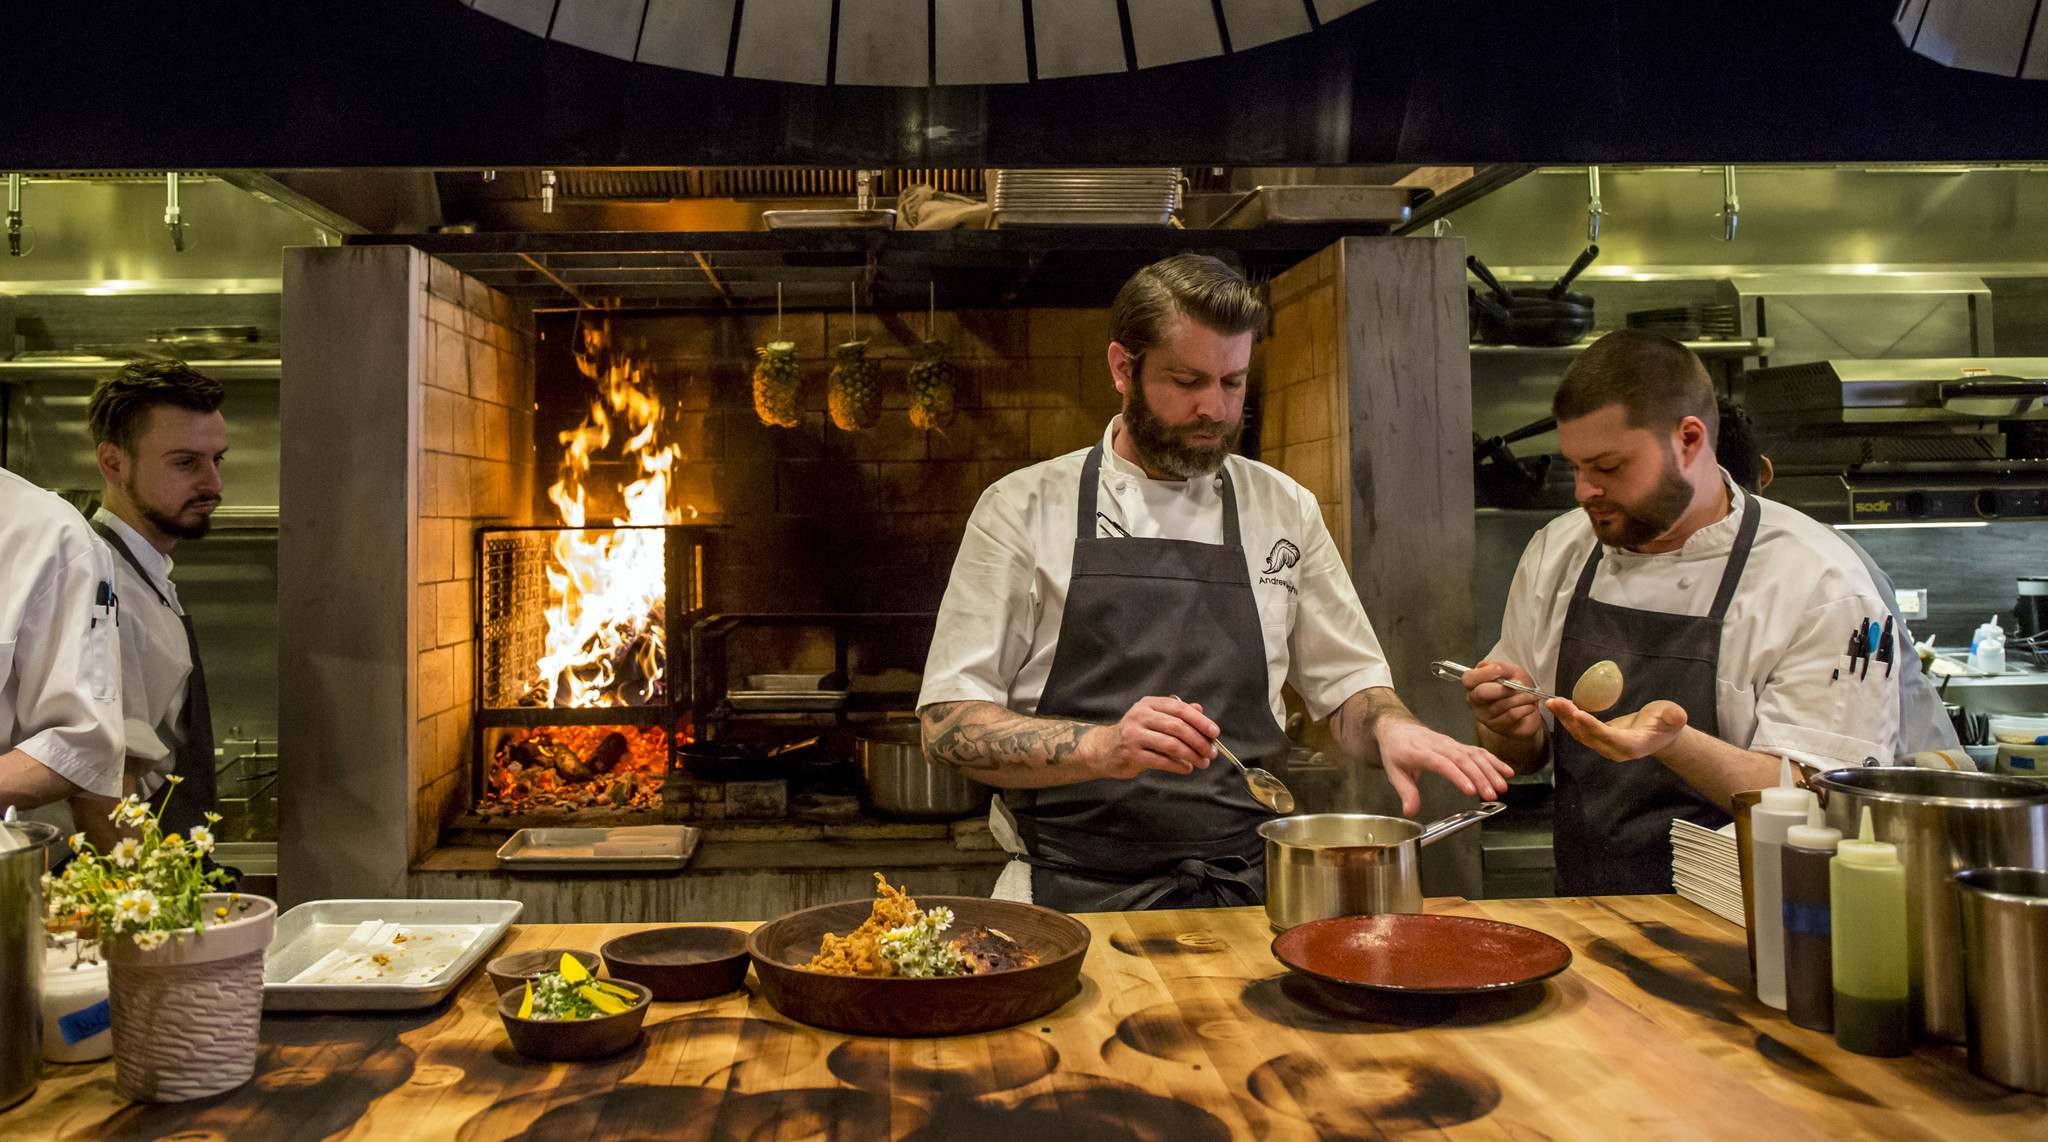 Chicago S Restaurant Of Year Chef Of Year Named At